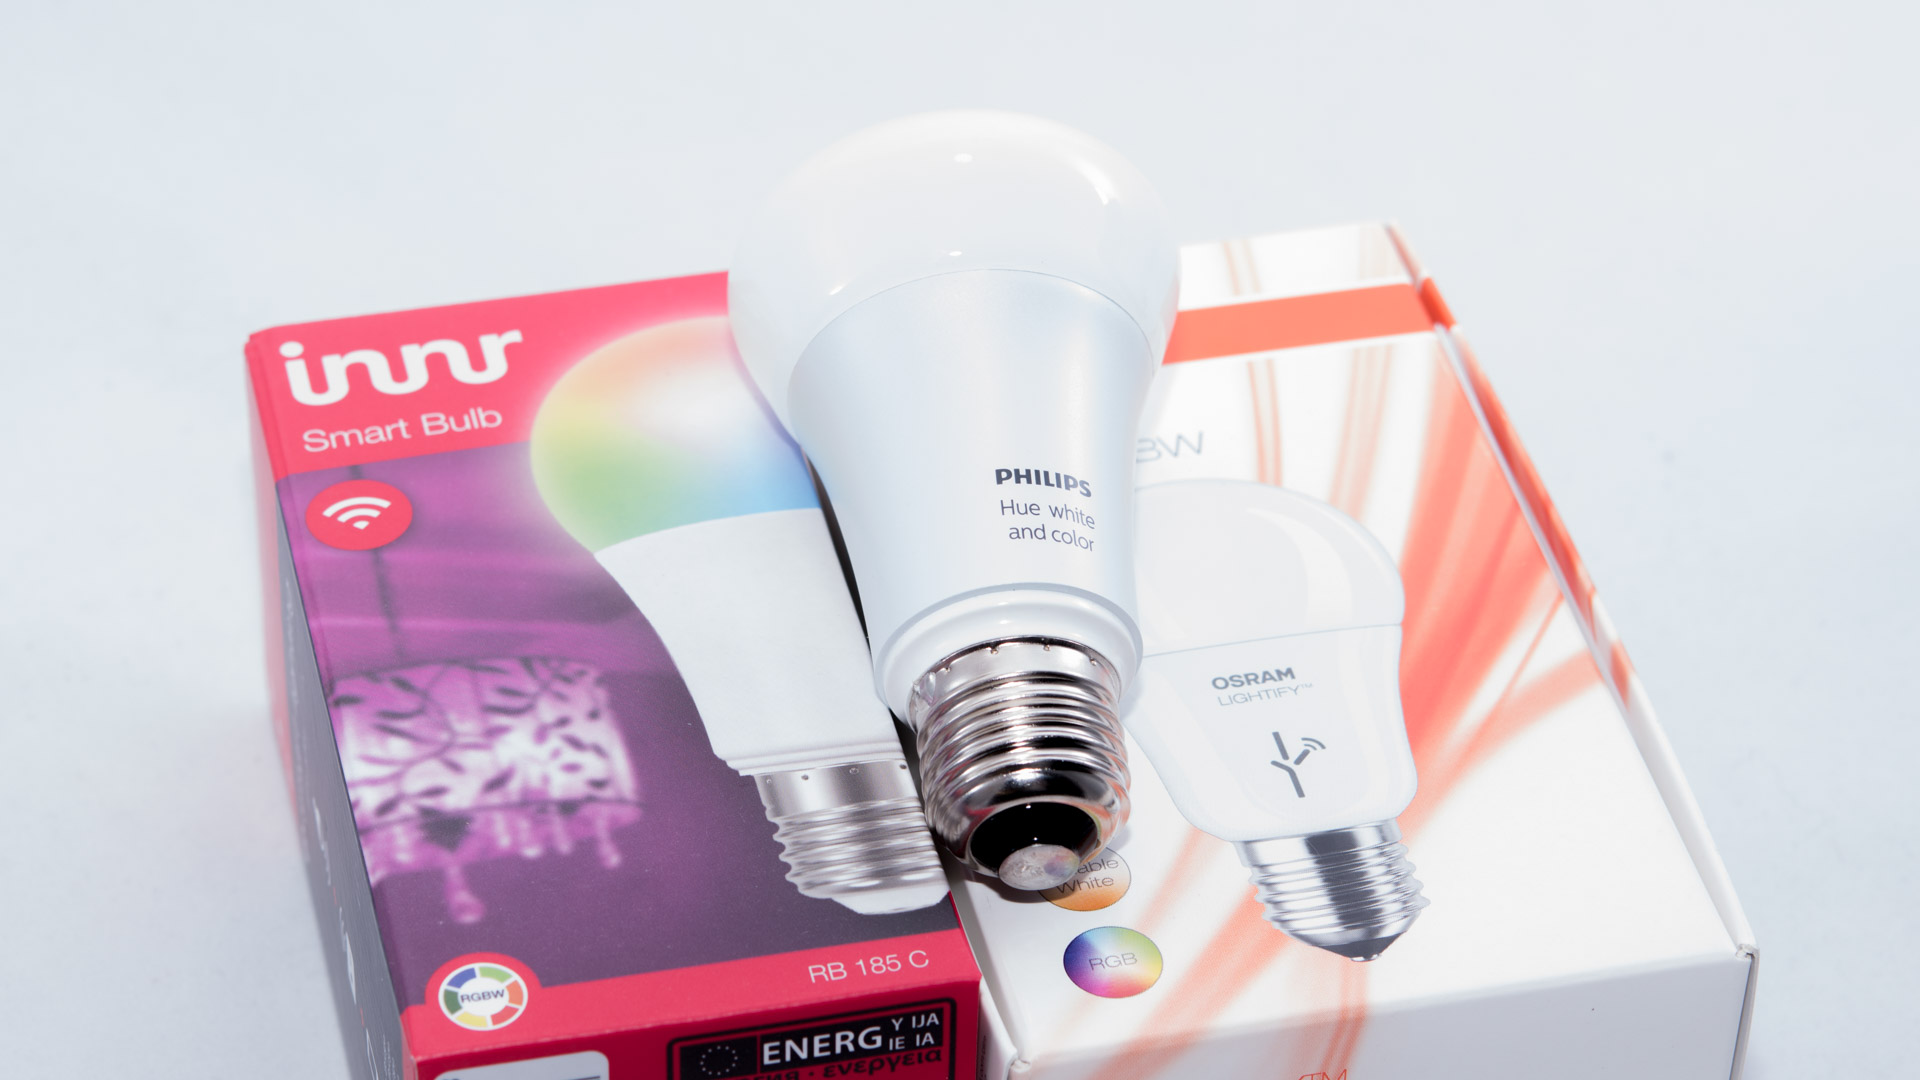 Hue Compatible Lampen : Alternative e27 glühbirnen mit philips hue nutzen philips osram